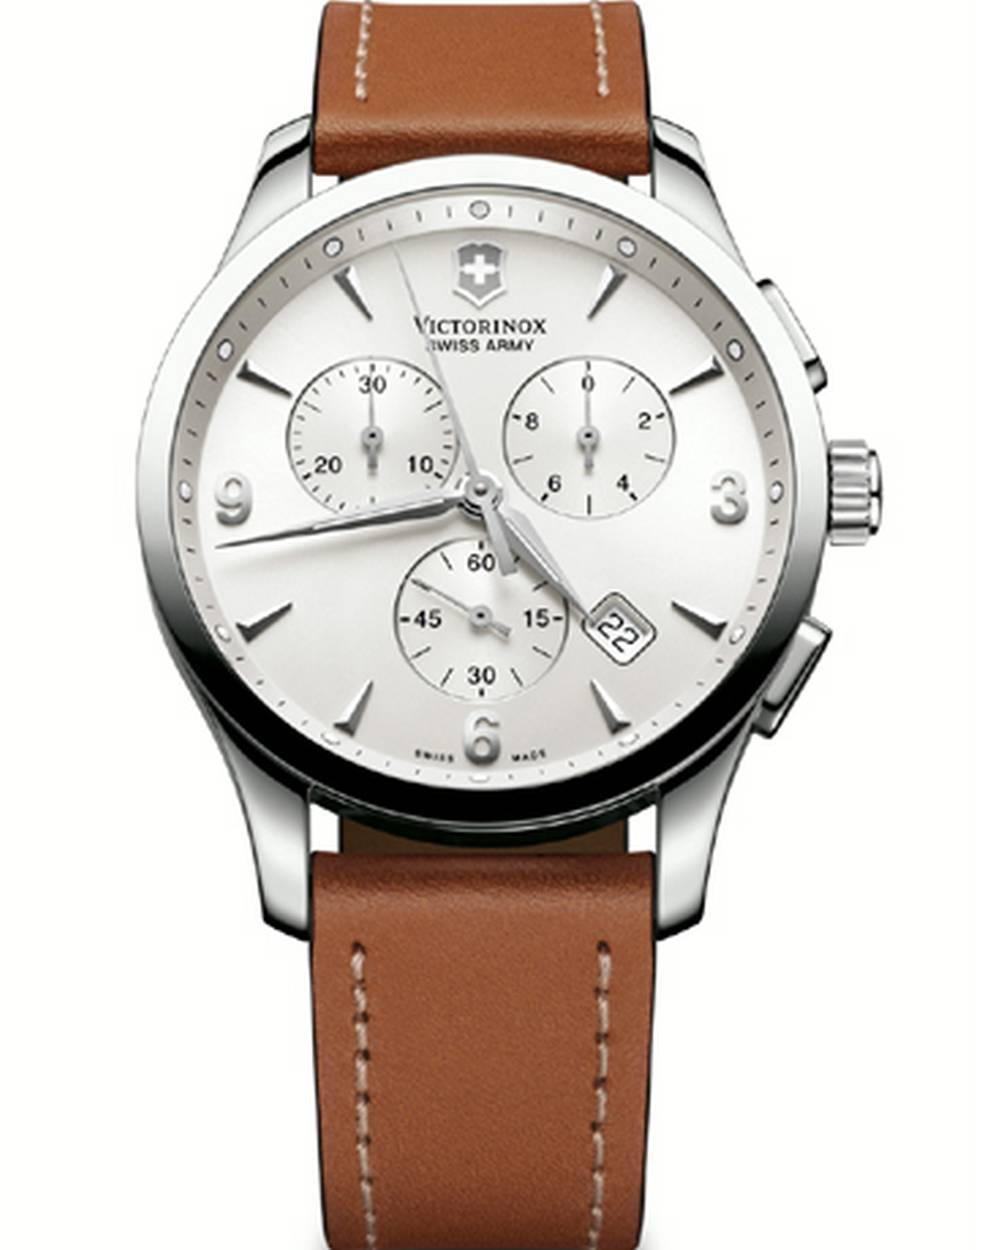 Victorinox Swiss Army Watch Leather Band